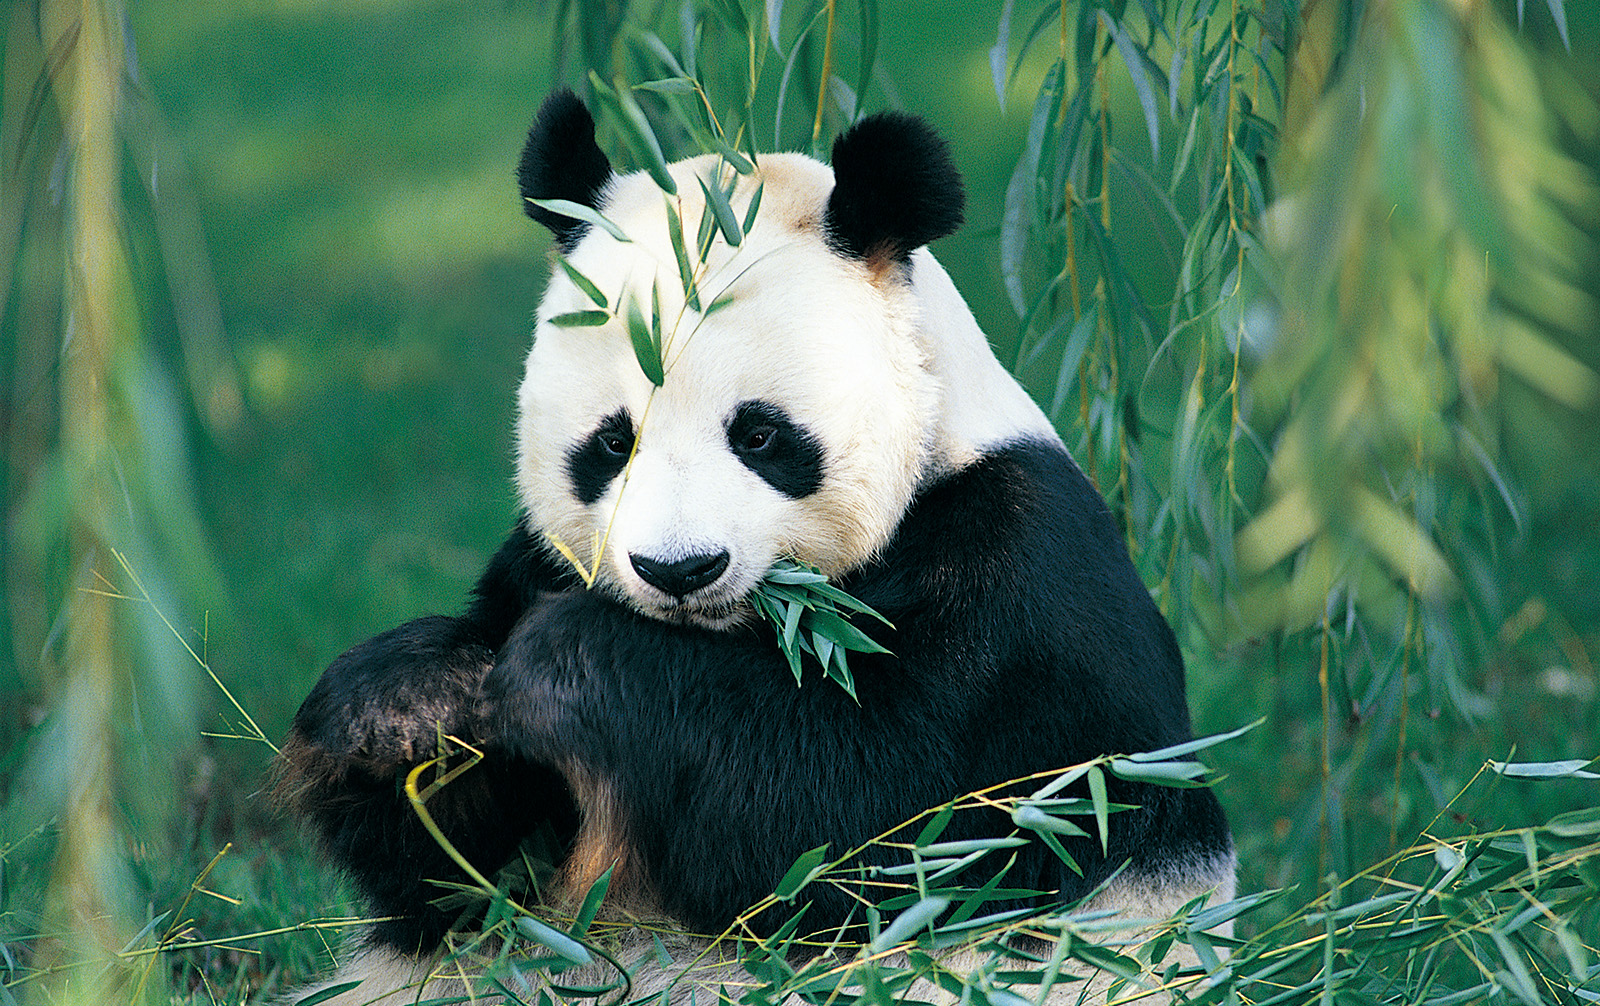 David Panda eating bamboo sitting 50040